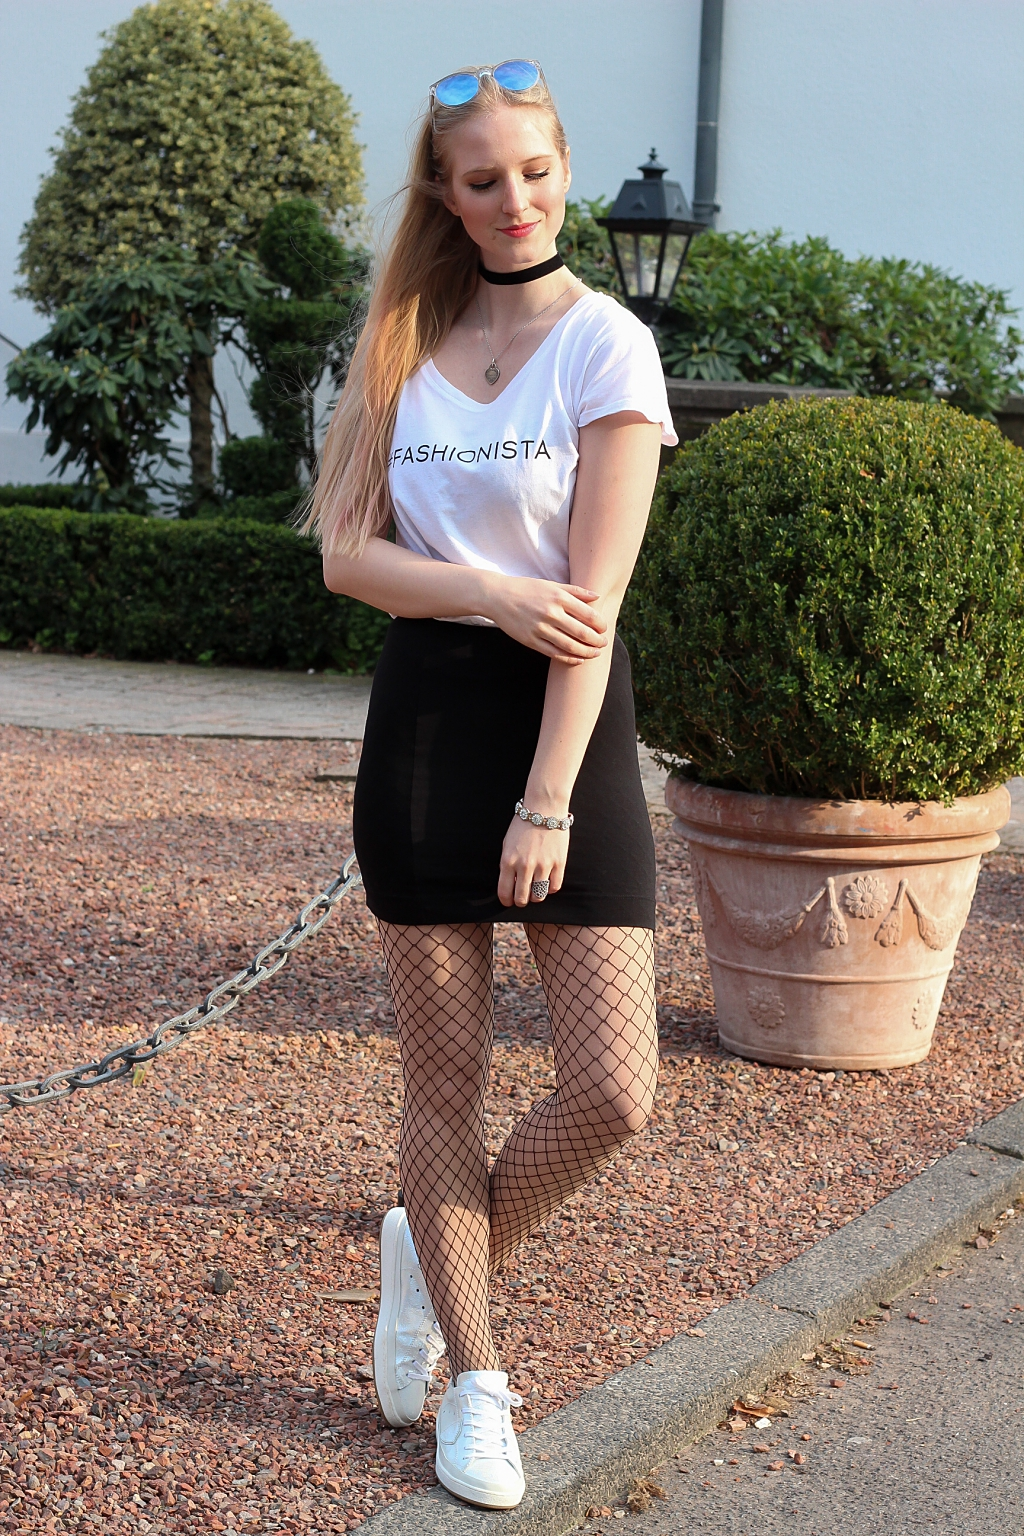 Netzstrumpfhosen, how to wear, Inspiration, Fishnet, Fishnet Tights, Mantel, Orsay, casual chic, fashionista, blogger, modebloggerin